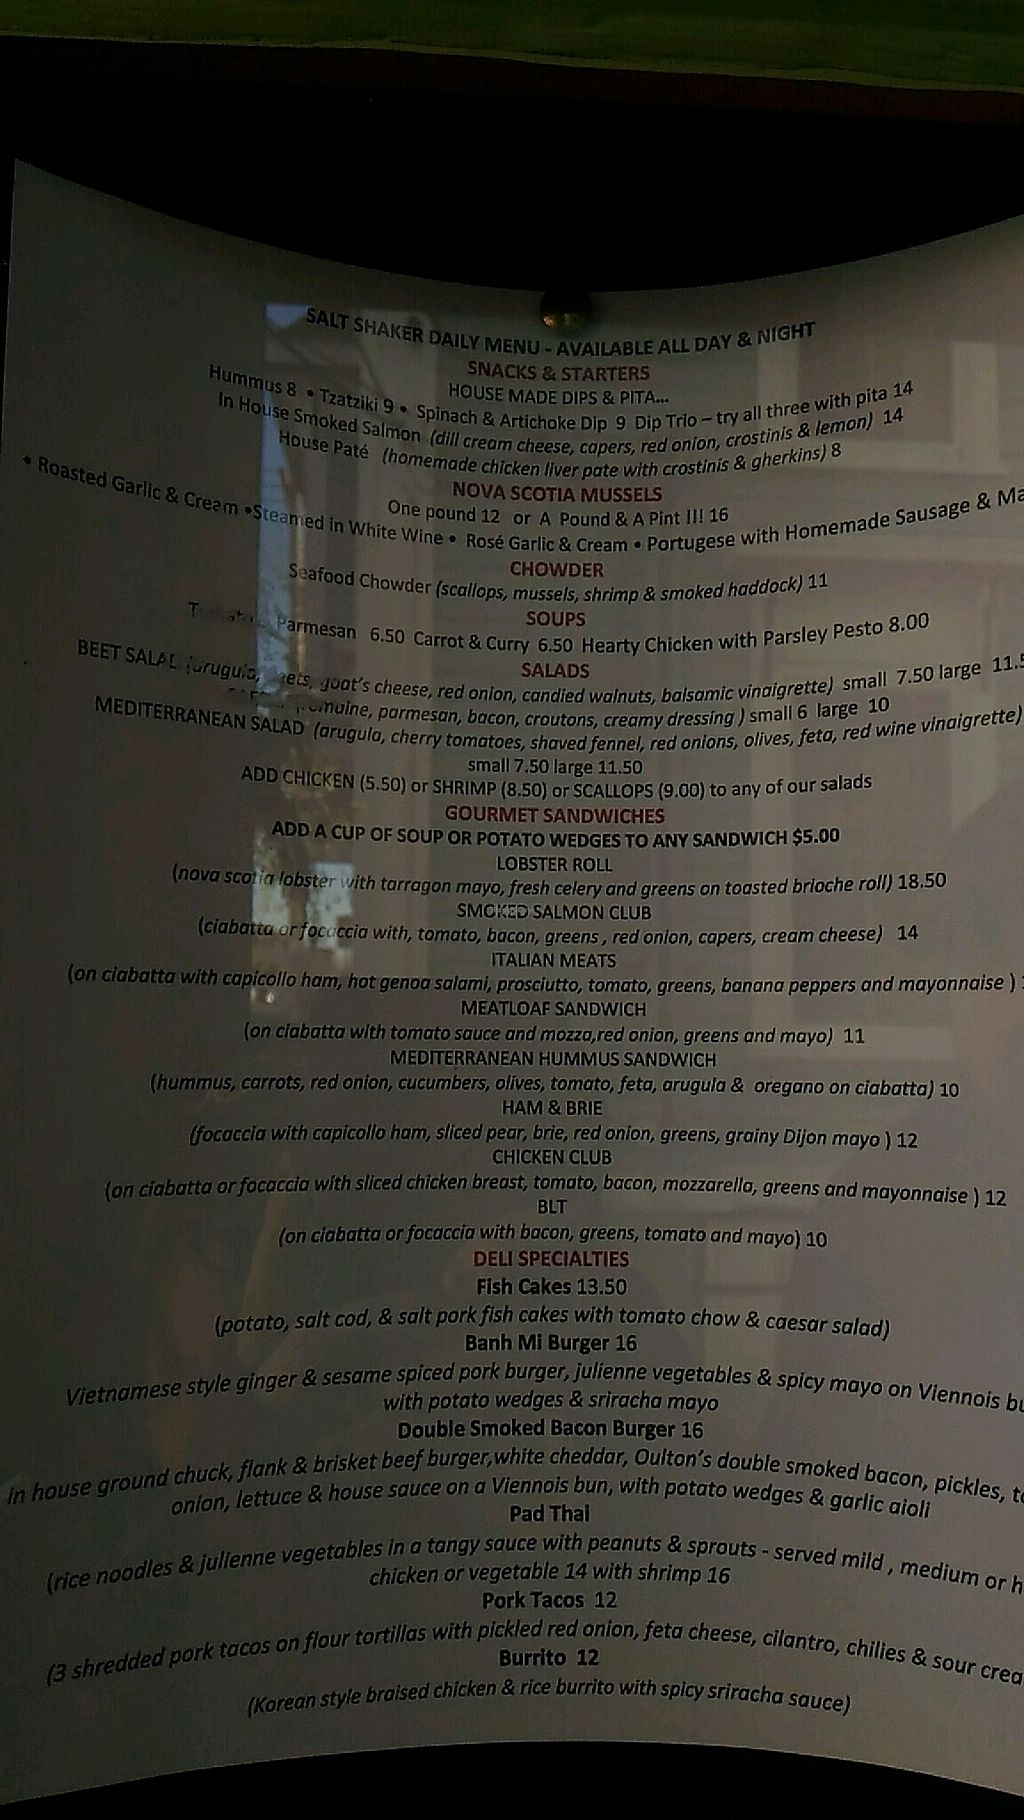 """Photo of Salt Shaker Deli  by <a href=""""/members/profile/QuothTheRaven"""">QuothTheRaven</a> <br/>menu <br/> November 12, 2017  - <a href='/contact/abuse/image/37758/324708'>Report</a>"""